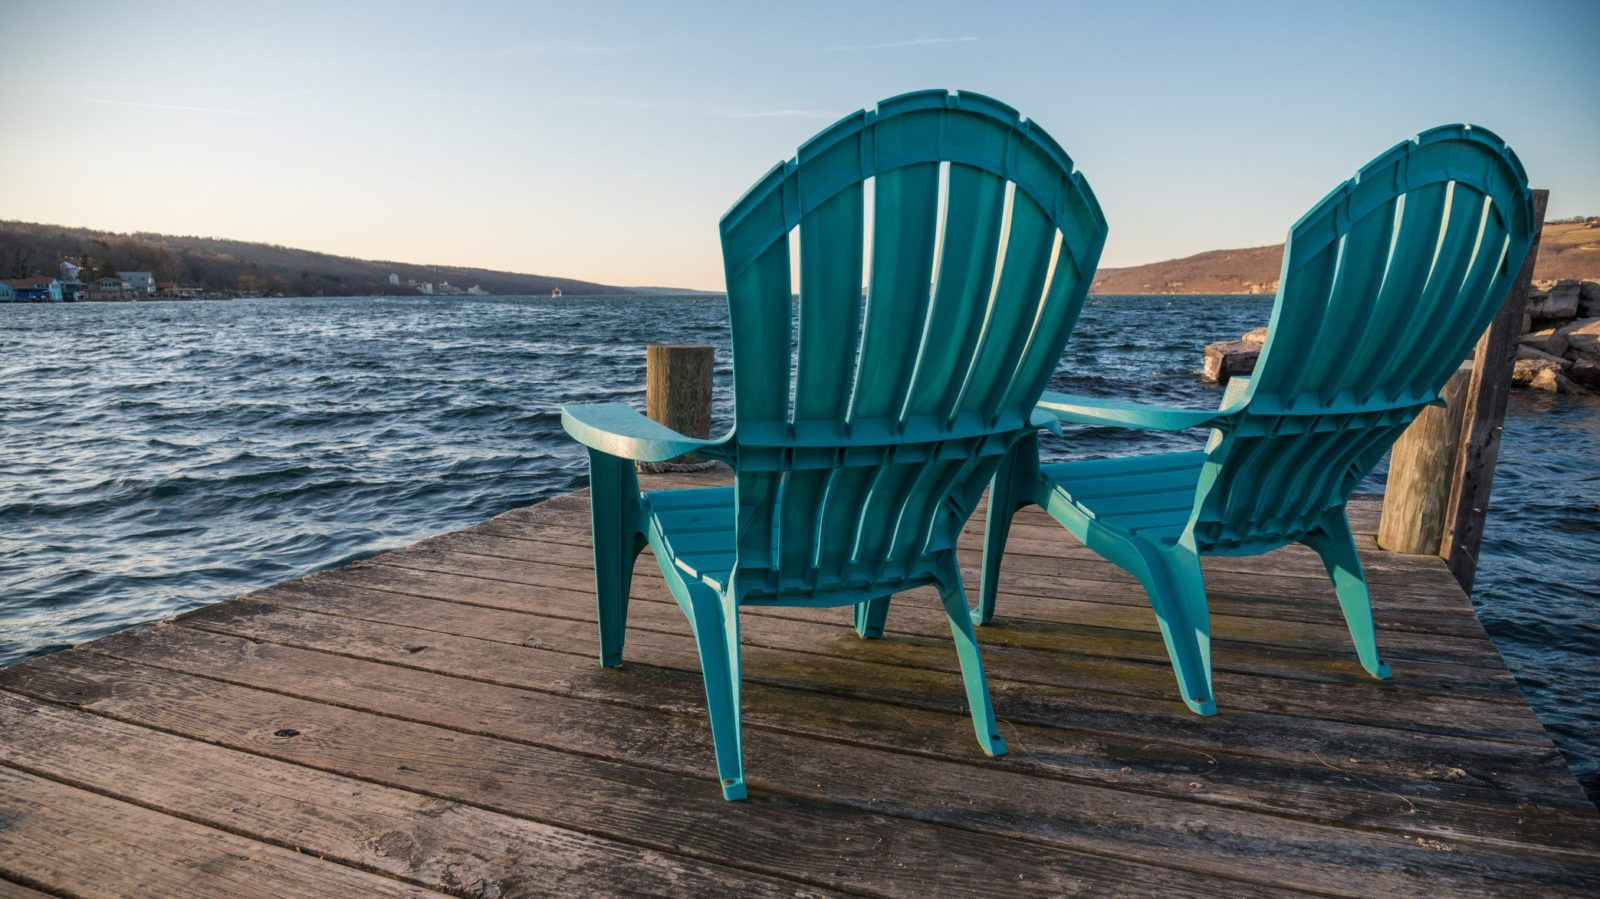 Chairs on a dock on Seneca Lake in New York State, a family vacation destination